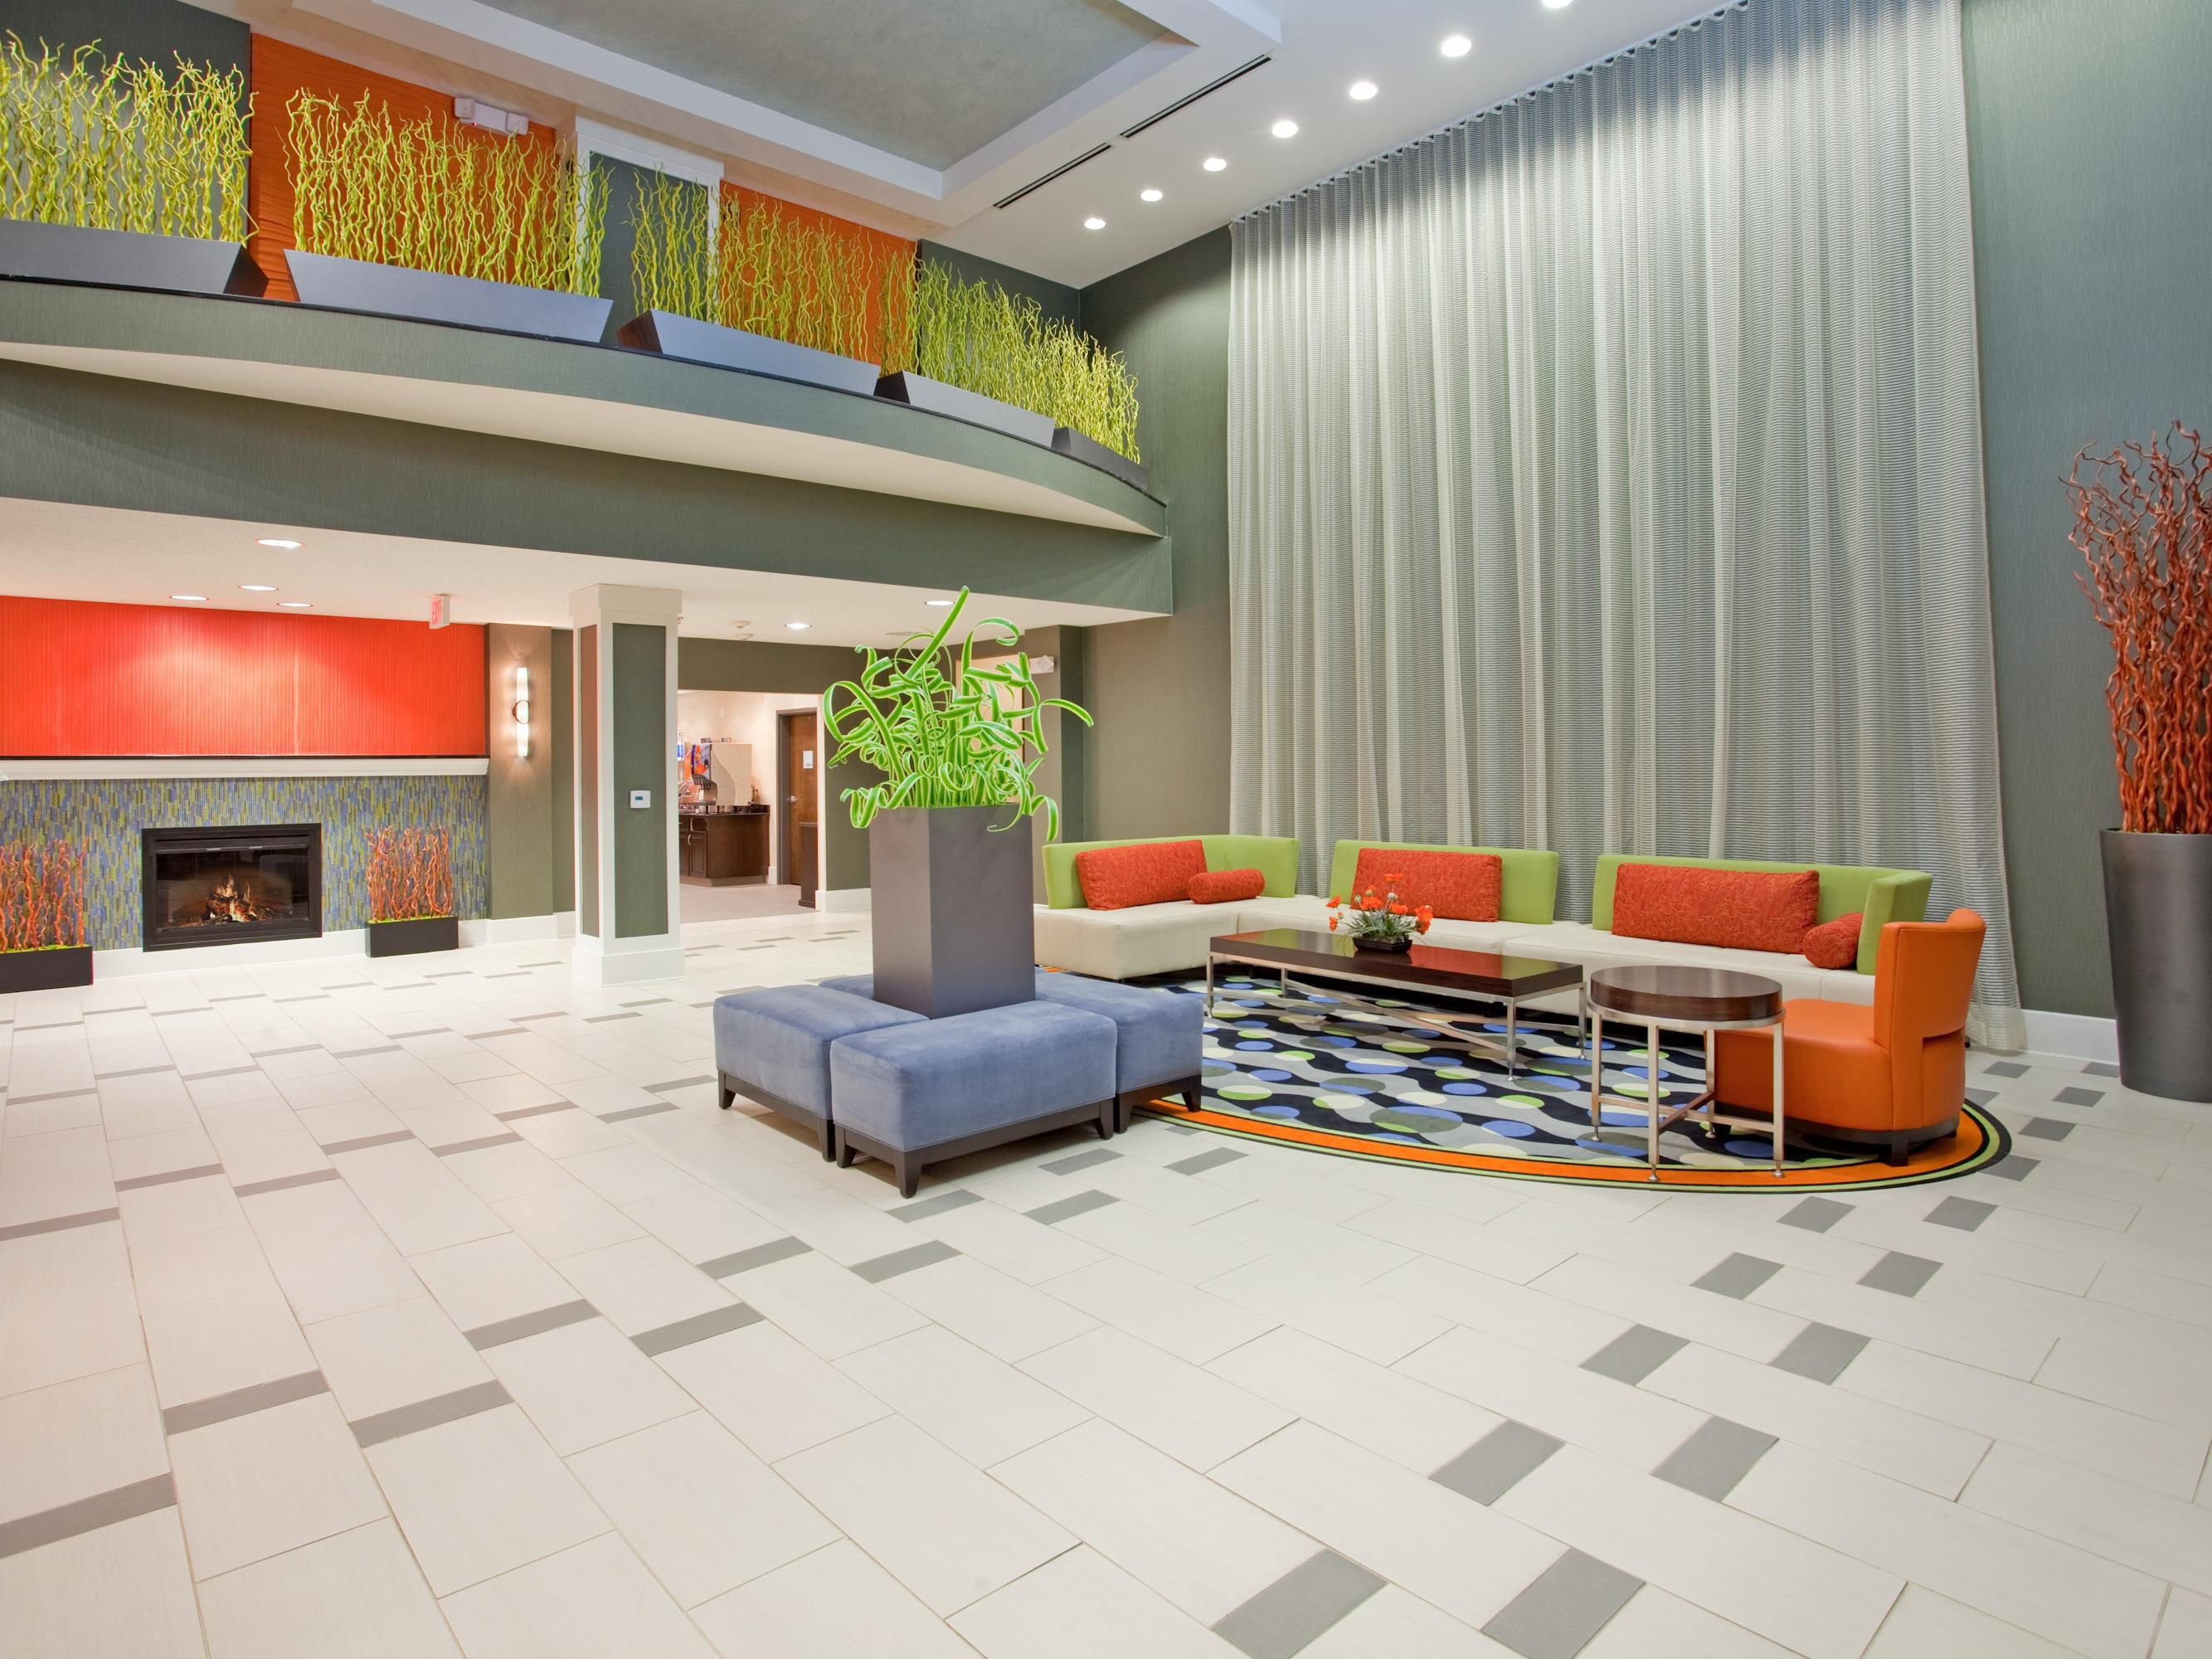 Relax after a long day of driving, in our inviting hotel lobby.